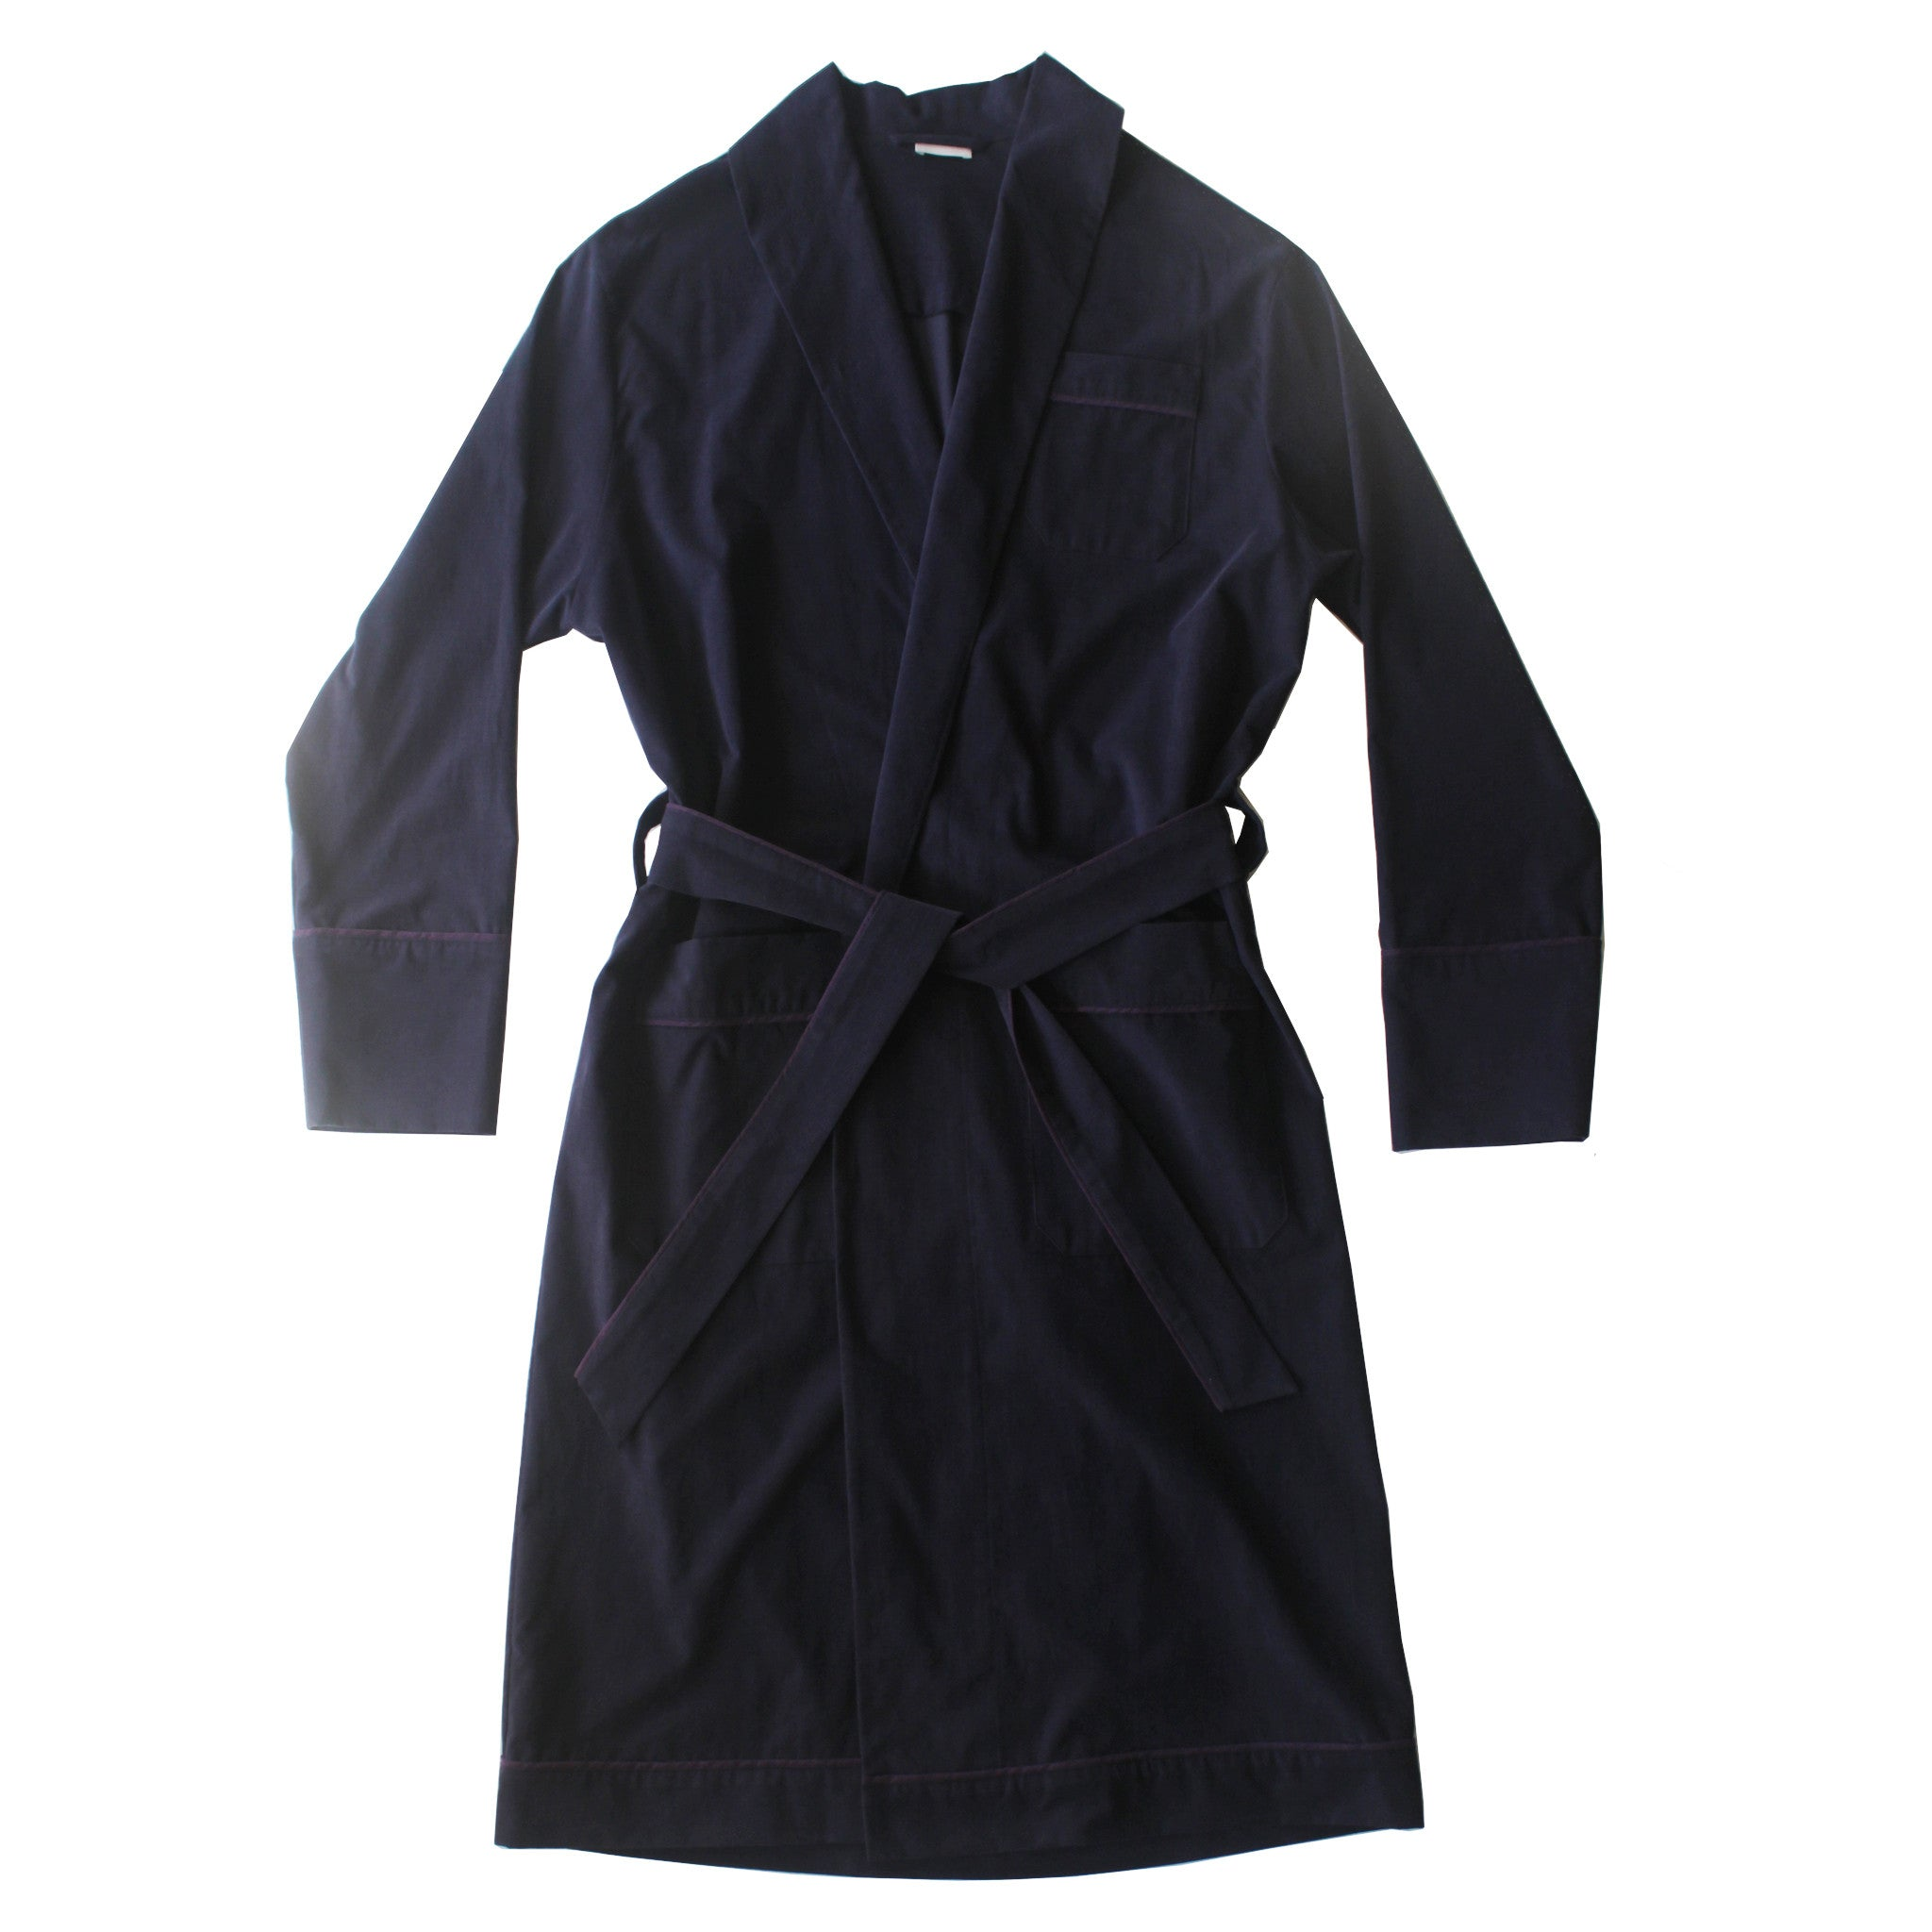 Janus Robe in Navy Italian Cotton Corduroy